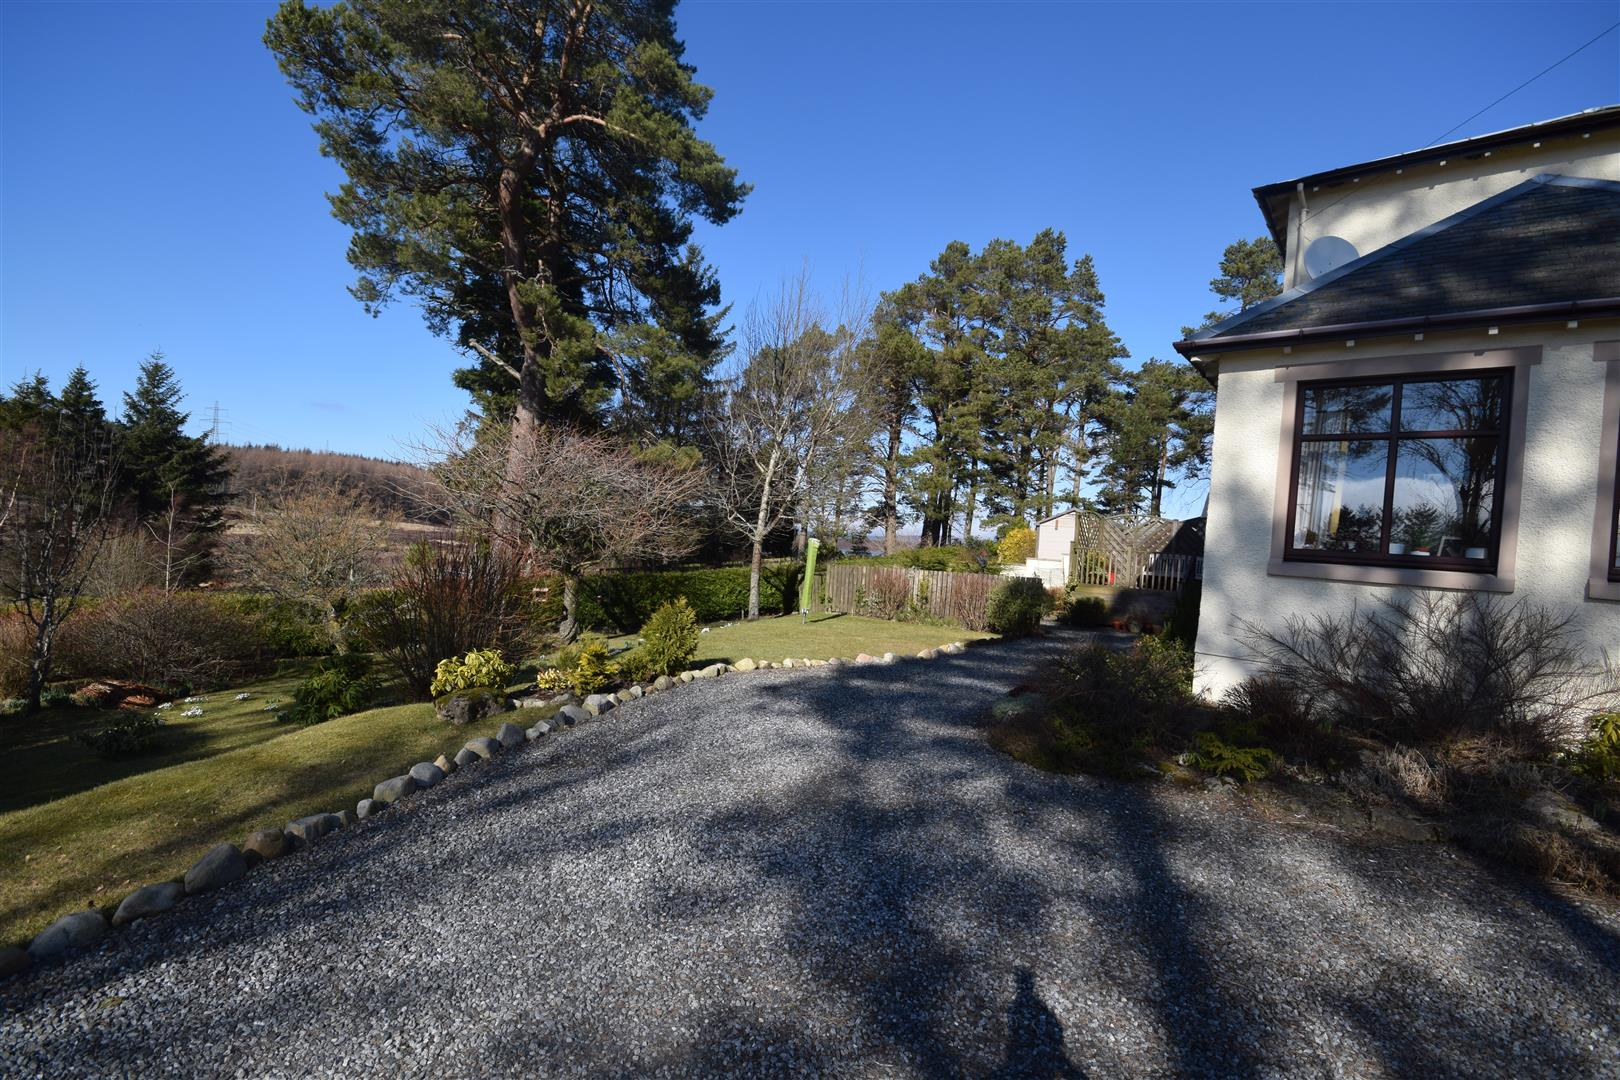 Tomphubil Bheag, Foss, By Pitlochry, Perthshire, PH16 5NL, UK